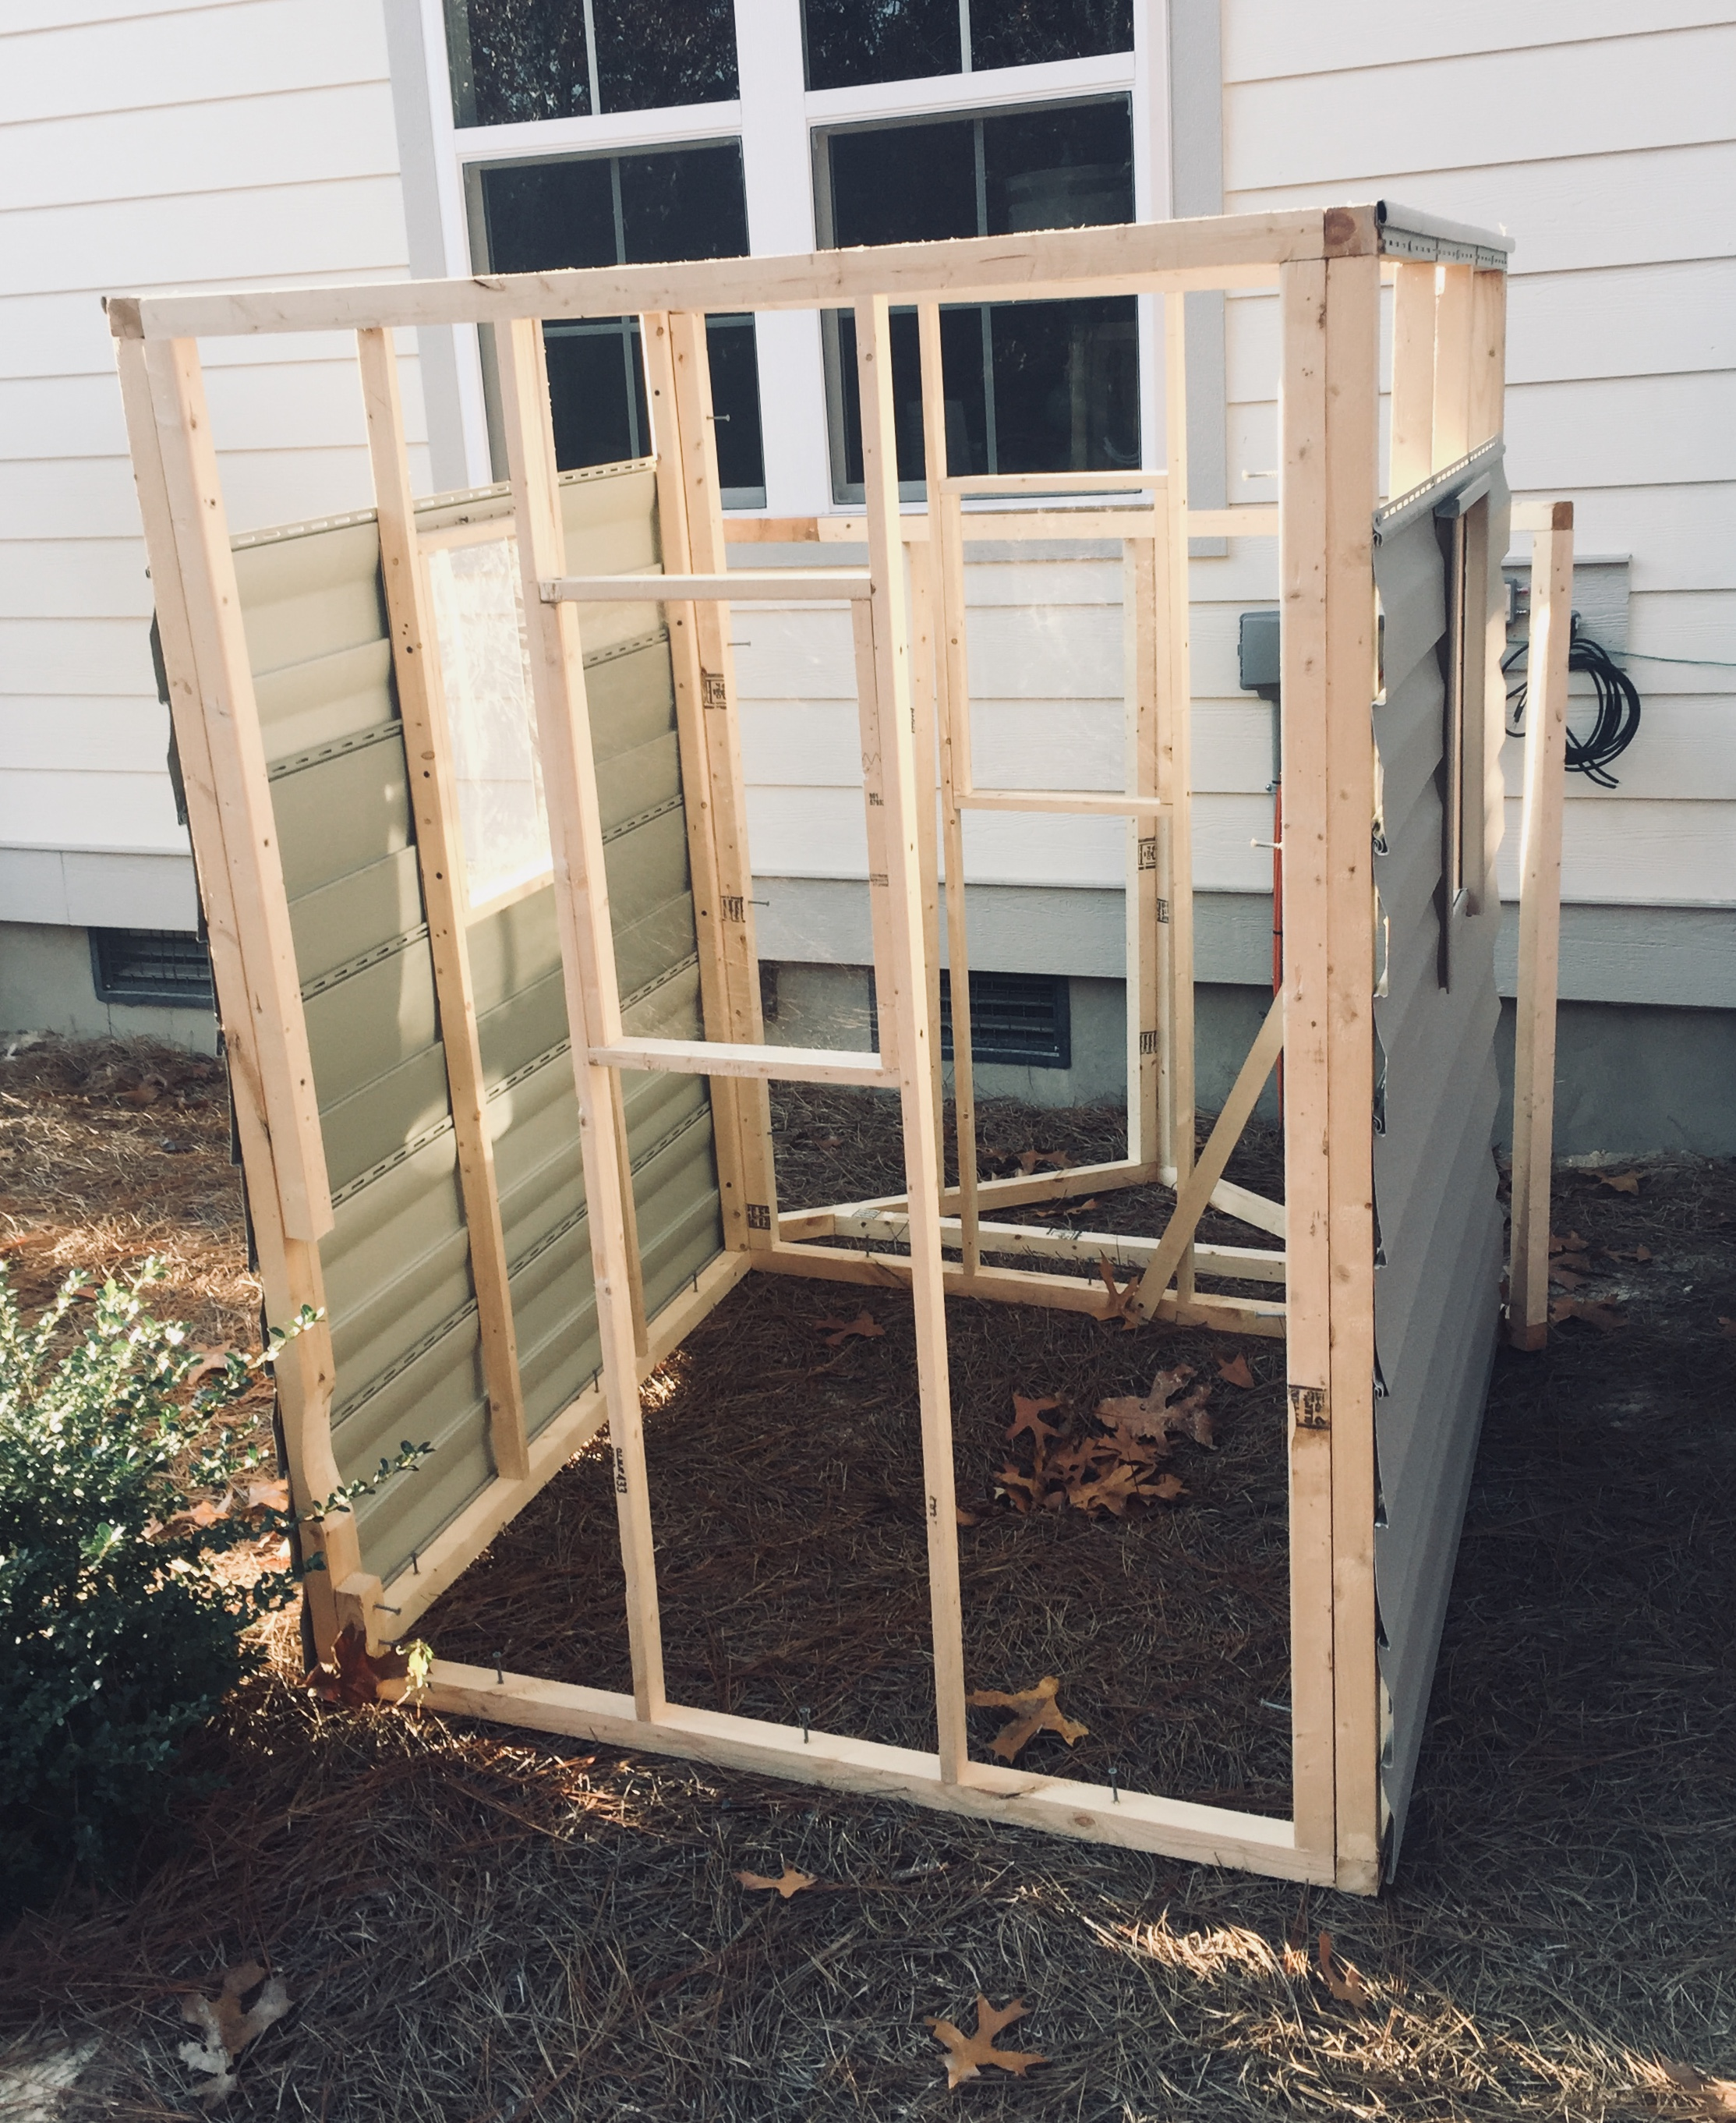 The beginnings of a tree-house frame, built by my husband and son, one nail at a time. I can't wait to see the finished product.